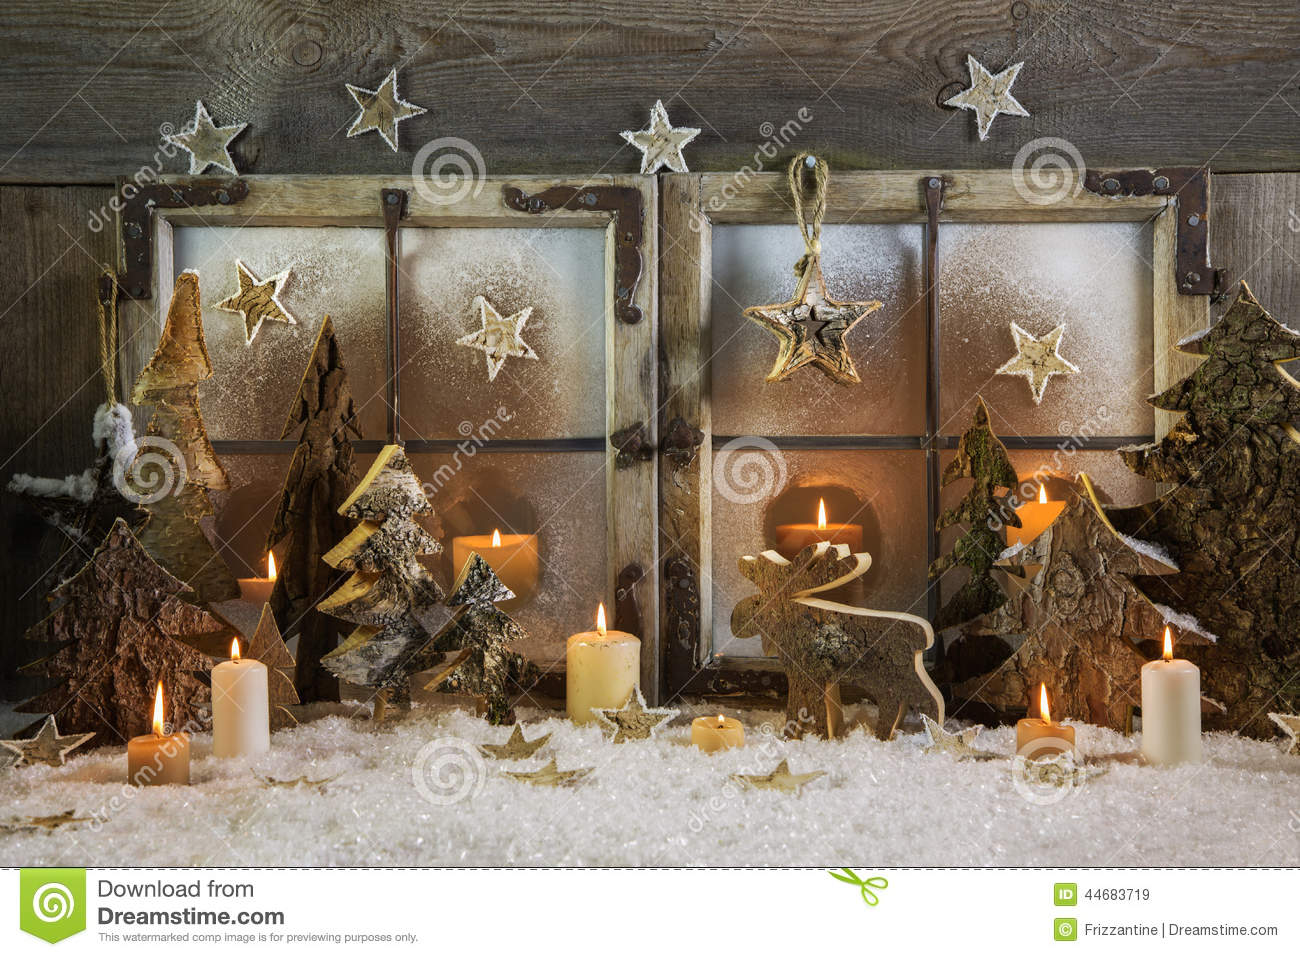 Outdoor christmas window decorations - Natural Handmade Christmas Decoration Of Wood Outdoor In The Win